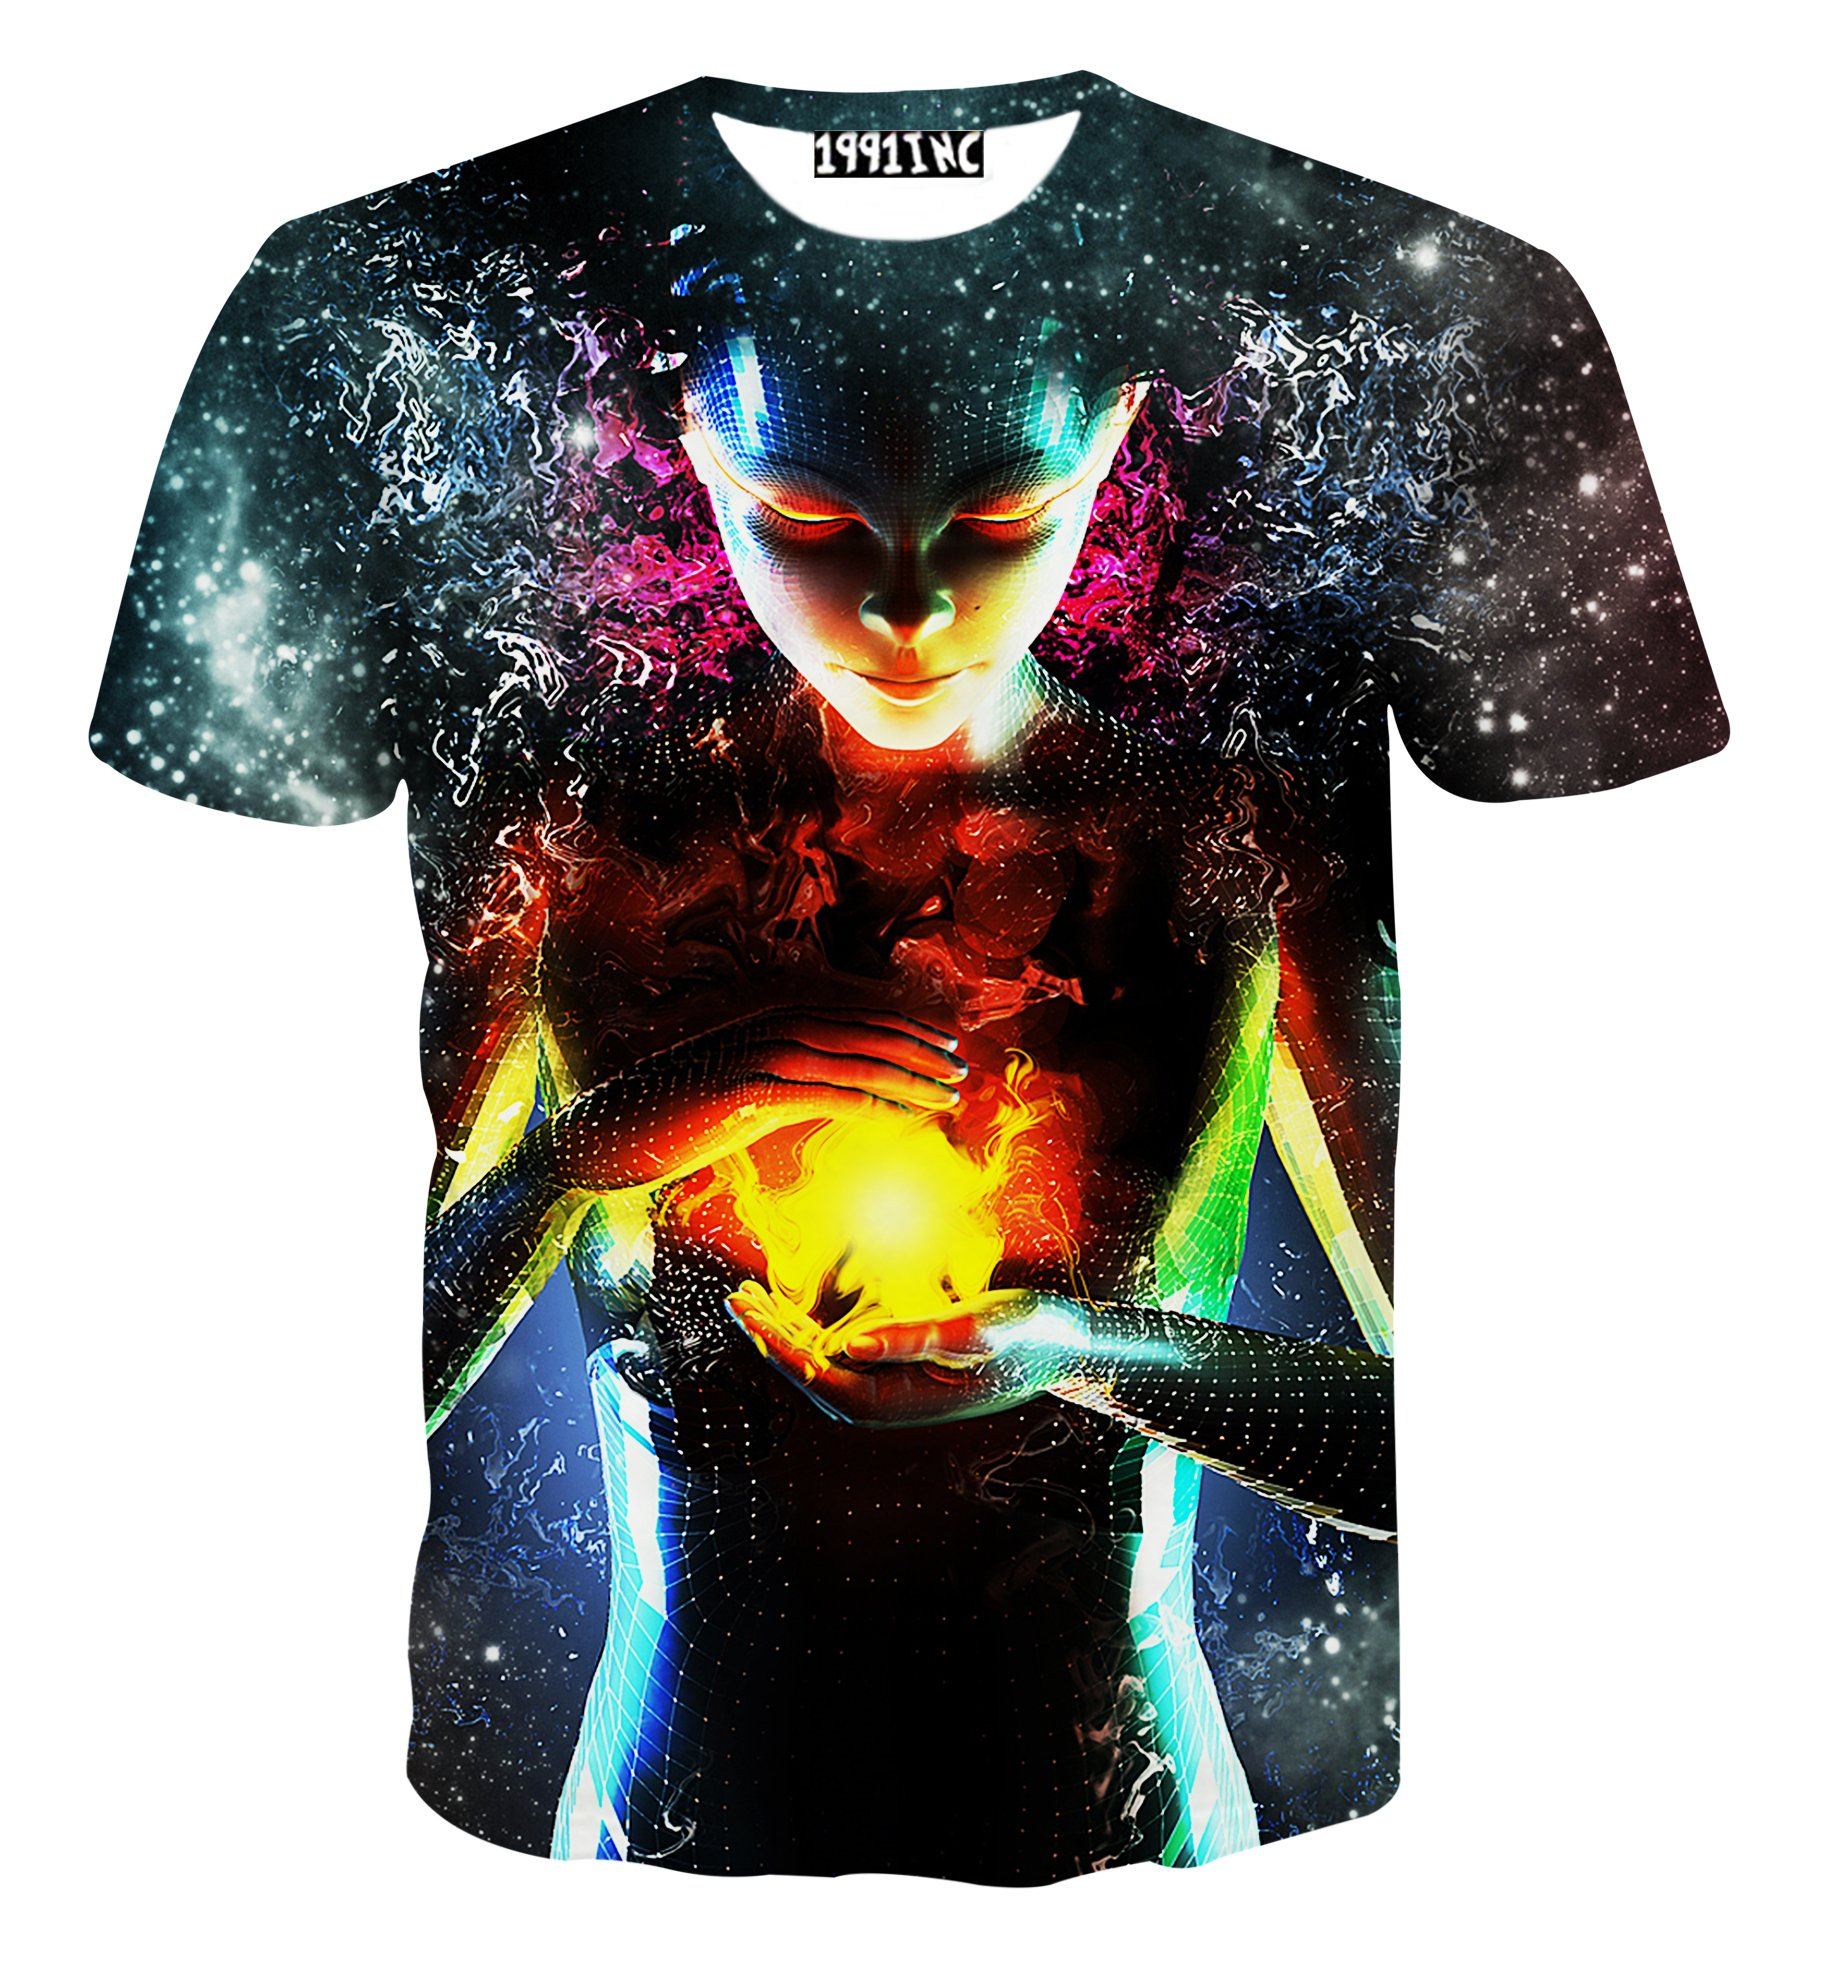 FaPlus Fashion Subject Unreal 3D Print Short-Sleeve Men's T Shirts Digital Design